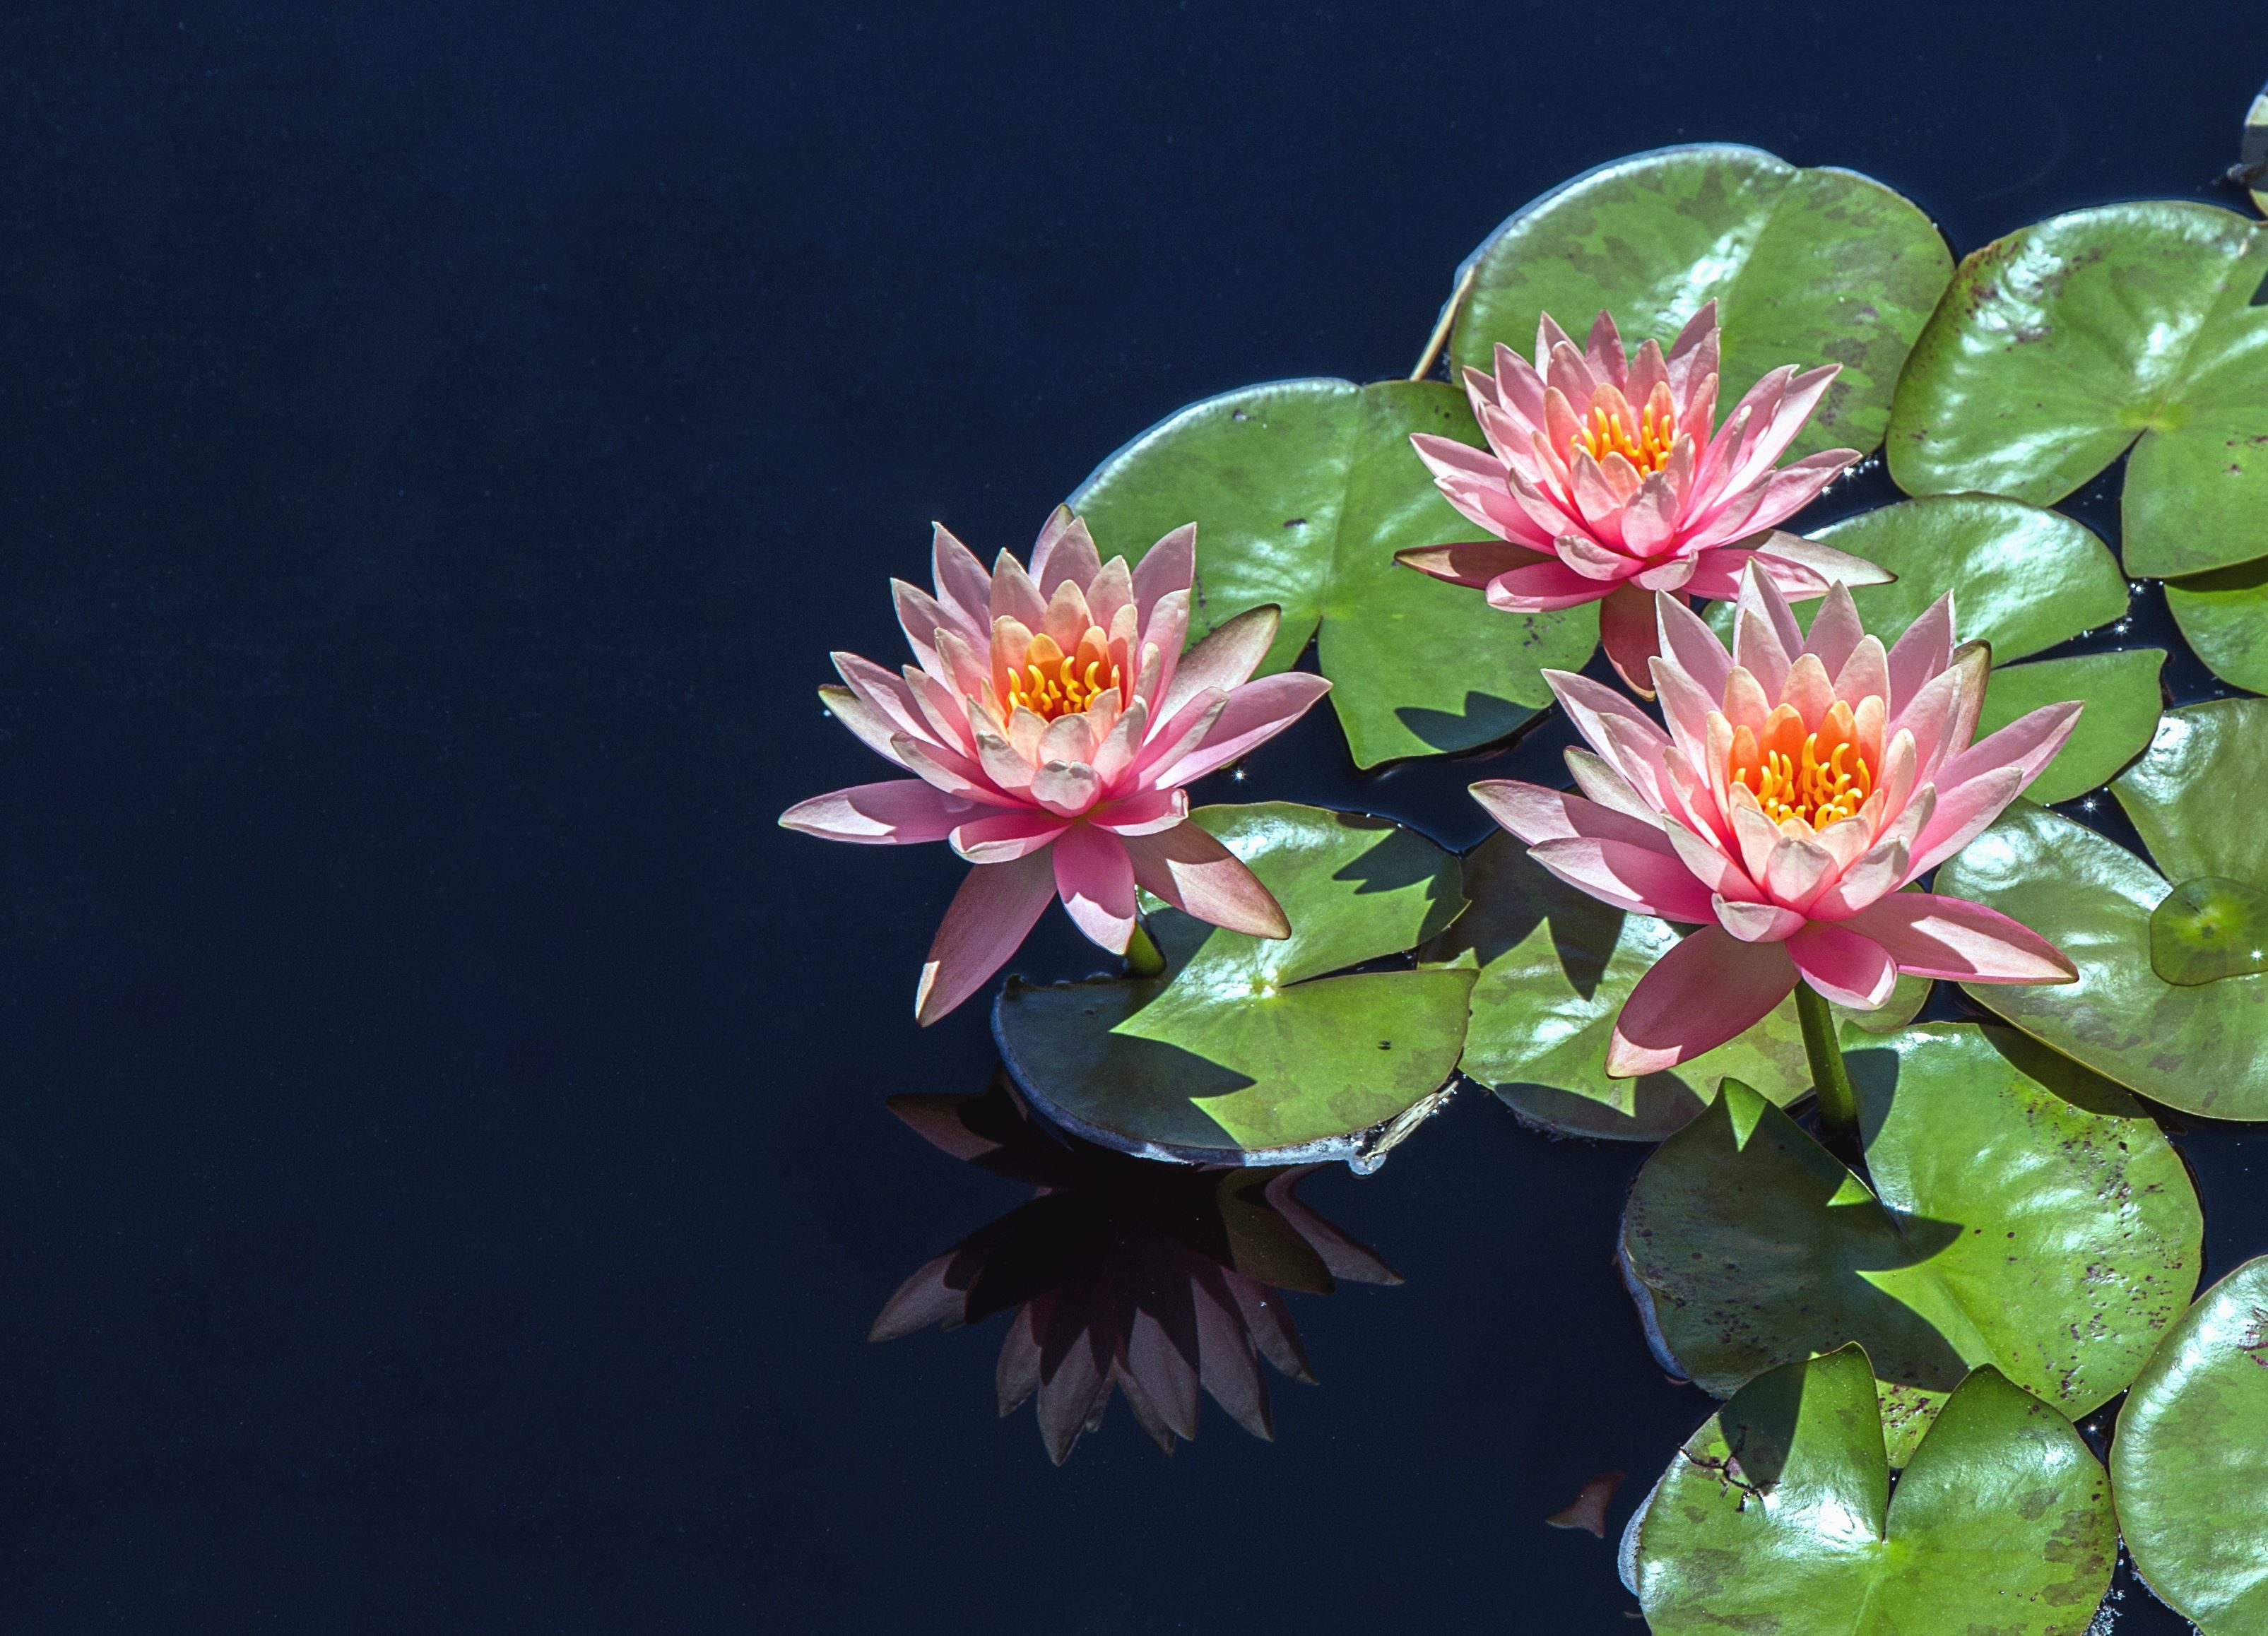 Free picture lotus flower water lily petal plant reflection water lotus flower water lily petal plant reflection water izmirmasajfo